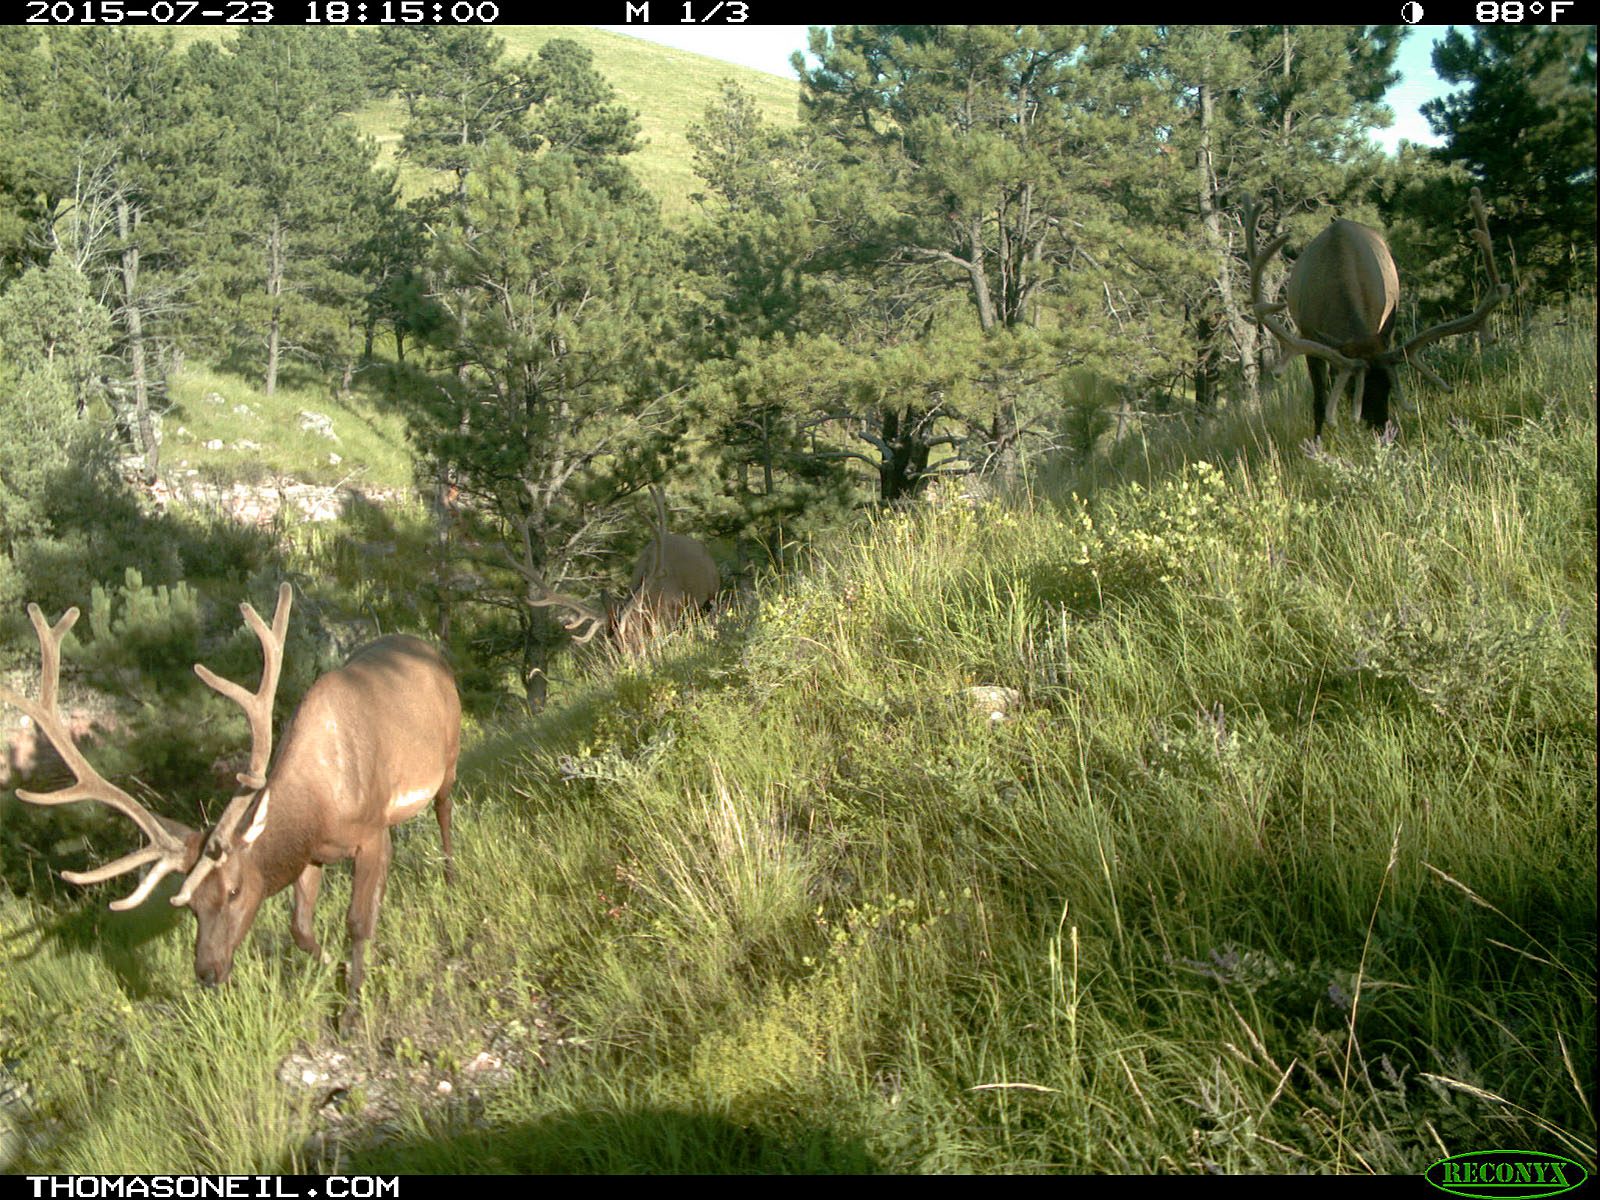 Elk on trailcam, Wind Cave National Park, July 2015,   Click for next photo.